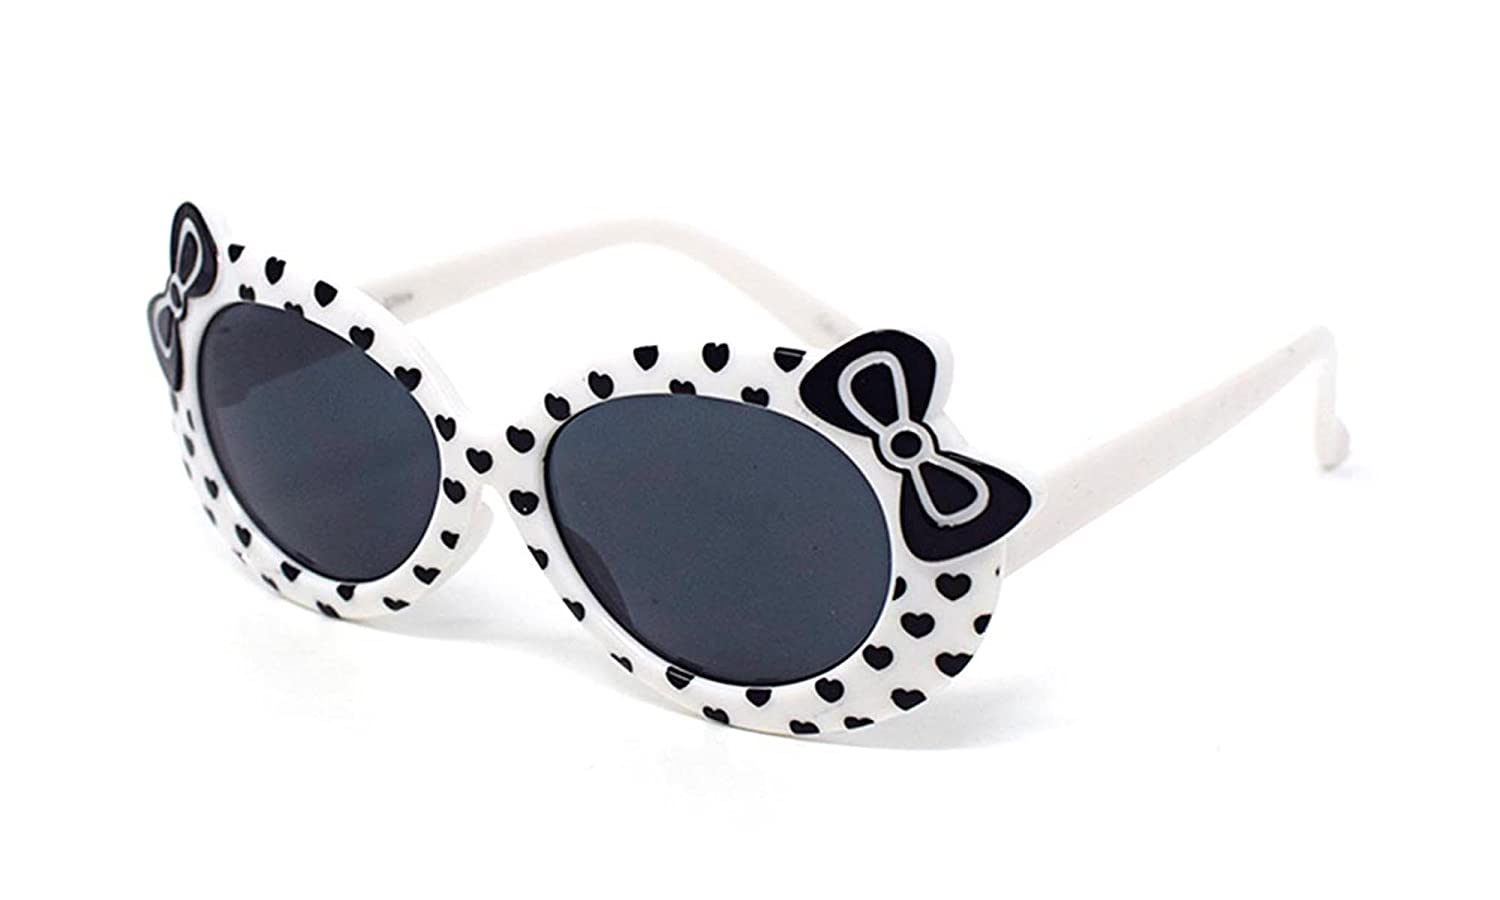 1 x White 1 x Purple Coloured Childrens Kids Girls Stylish Cute Designer Style Sunglasses High Quality with a Bow and heart Style UV400 Sunglasses Shades UVA UVB Protection